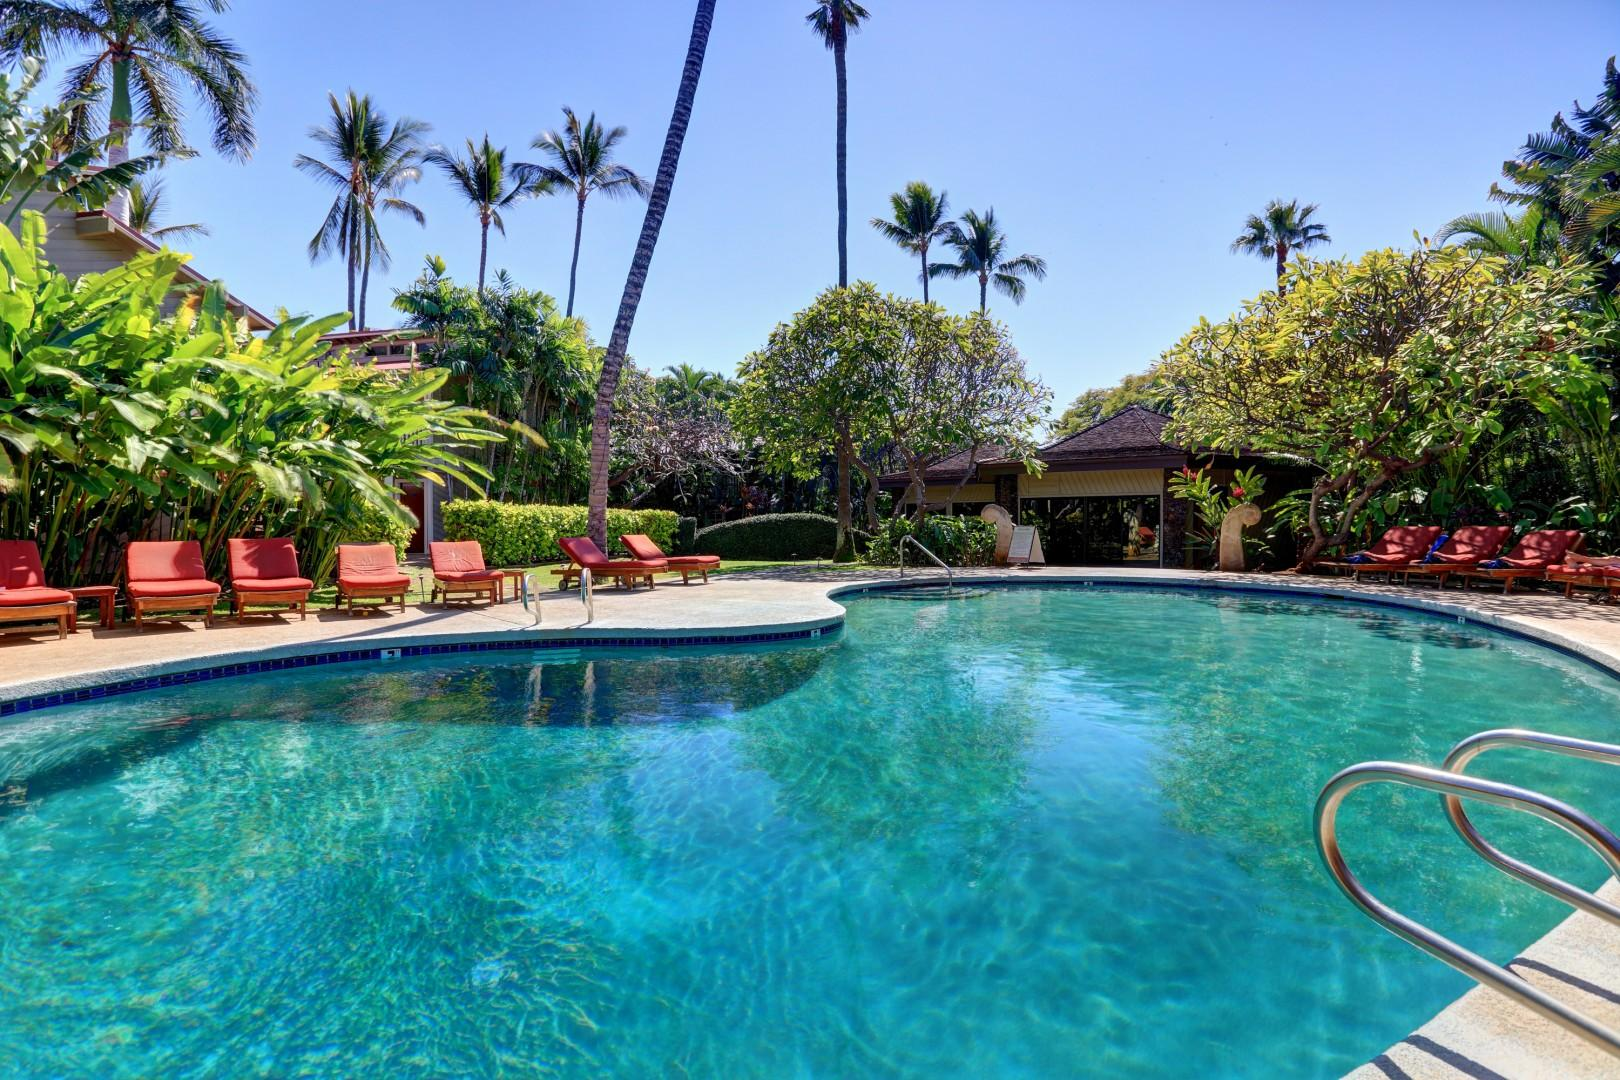 One of the community pools at Aina Nalu.